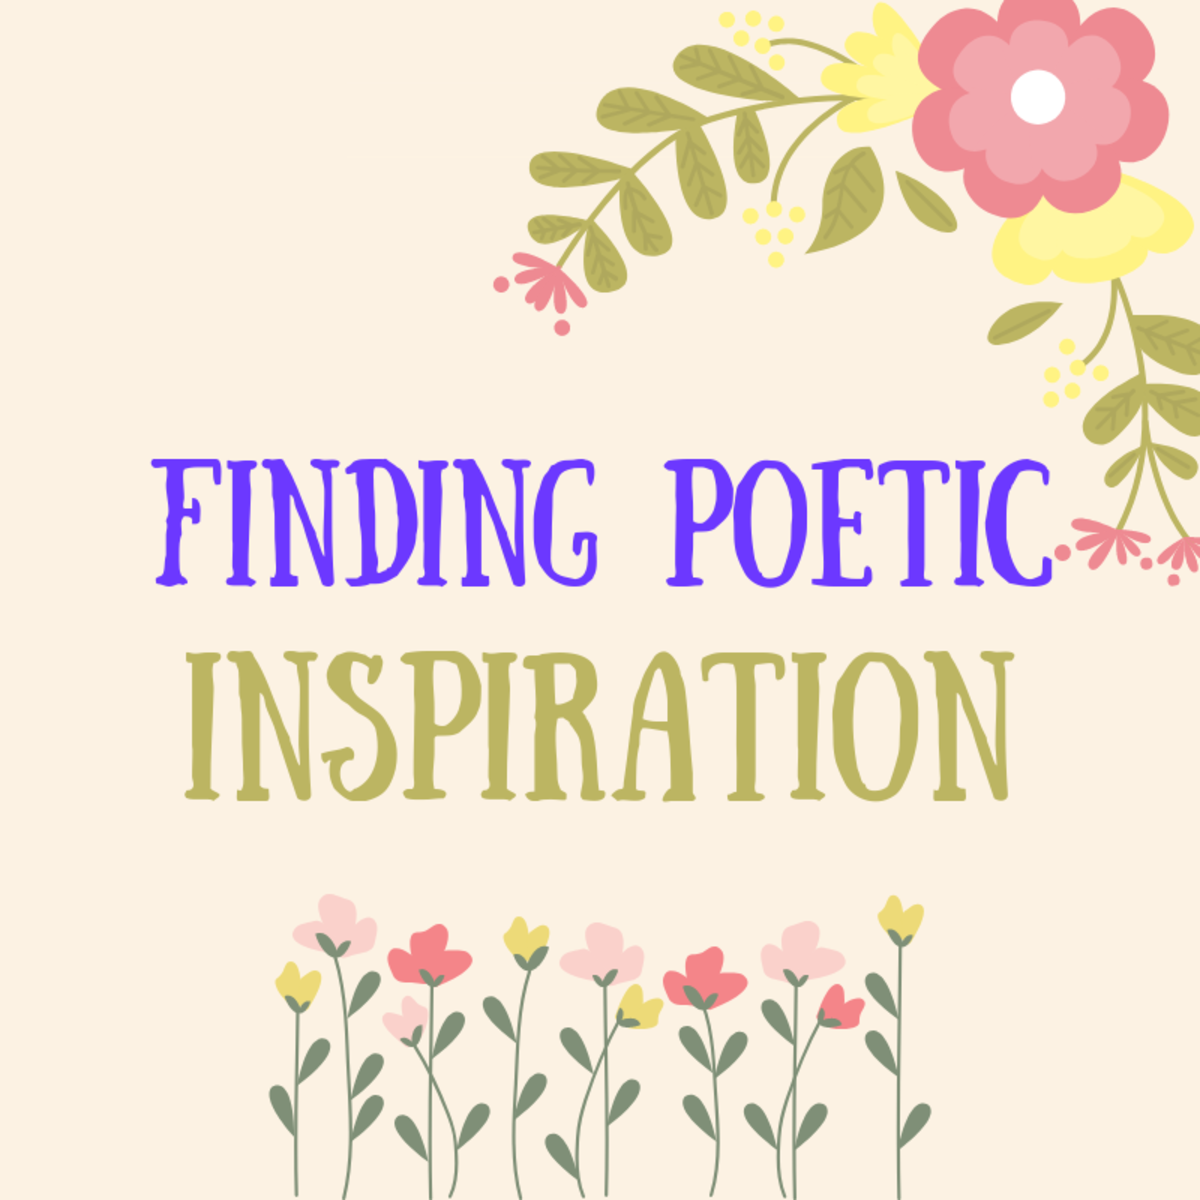 10 Places to Find Poetic Inspiration